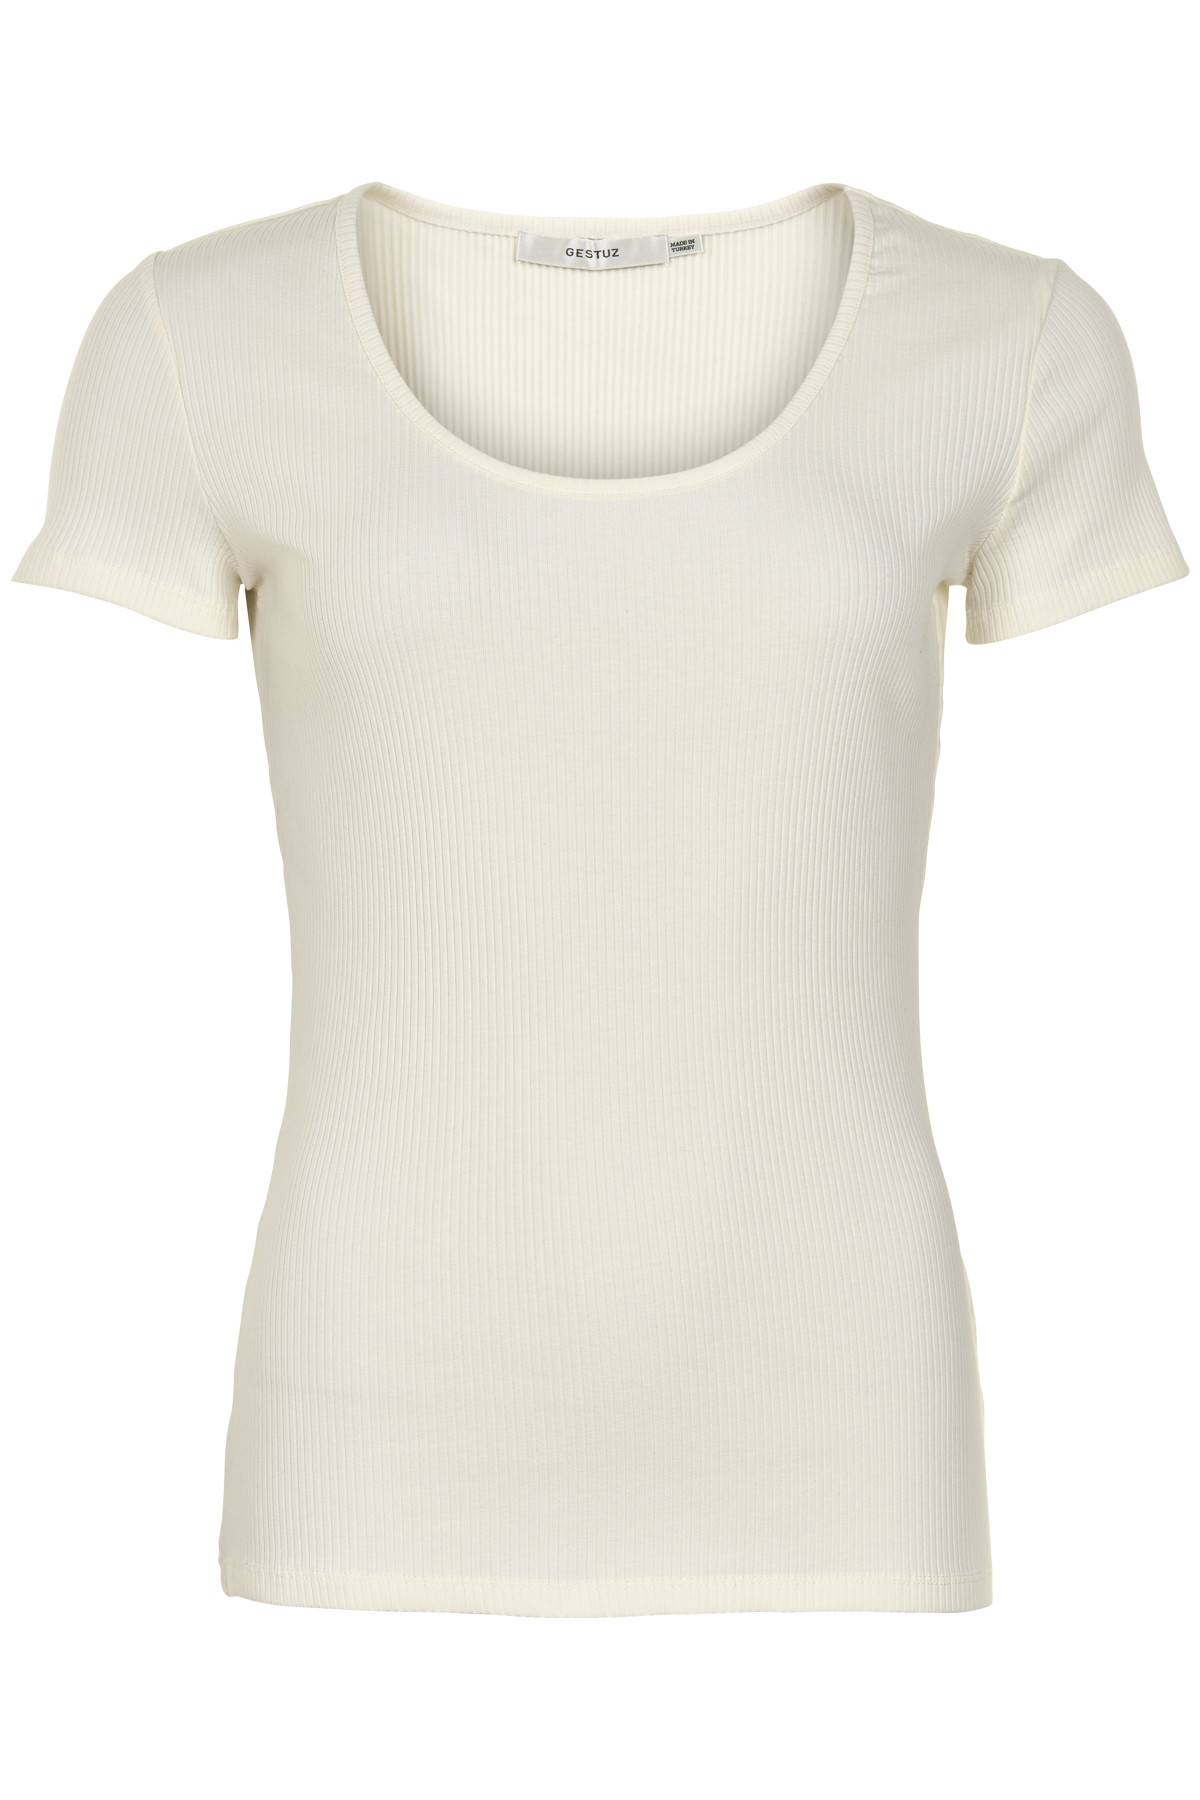 Image of   GESTUZ ROLLA TEE B (Bright White 90014, M)